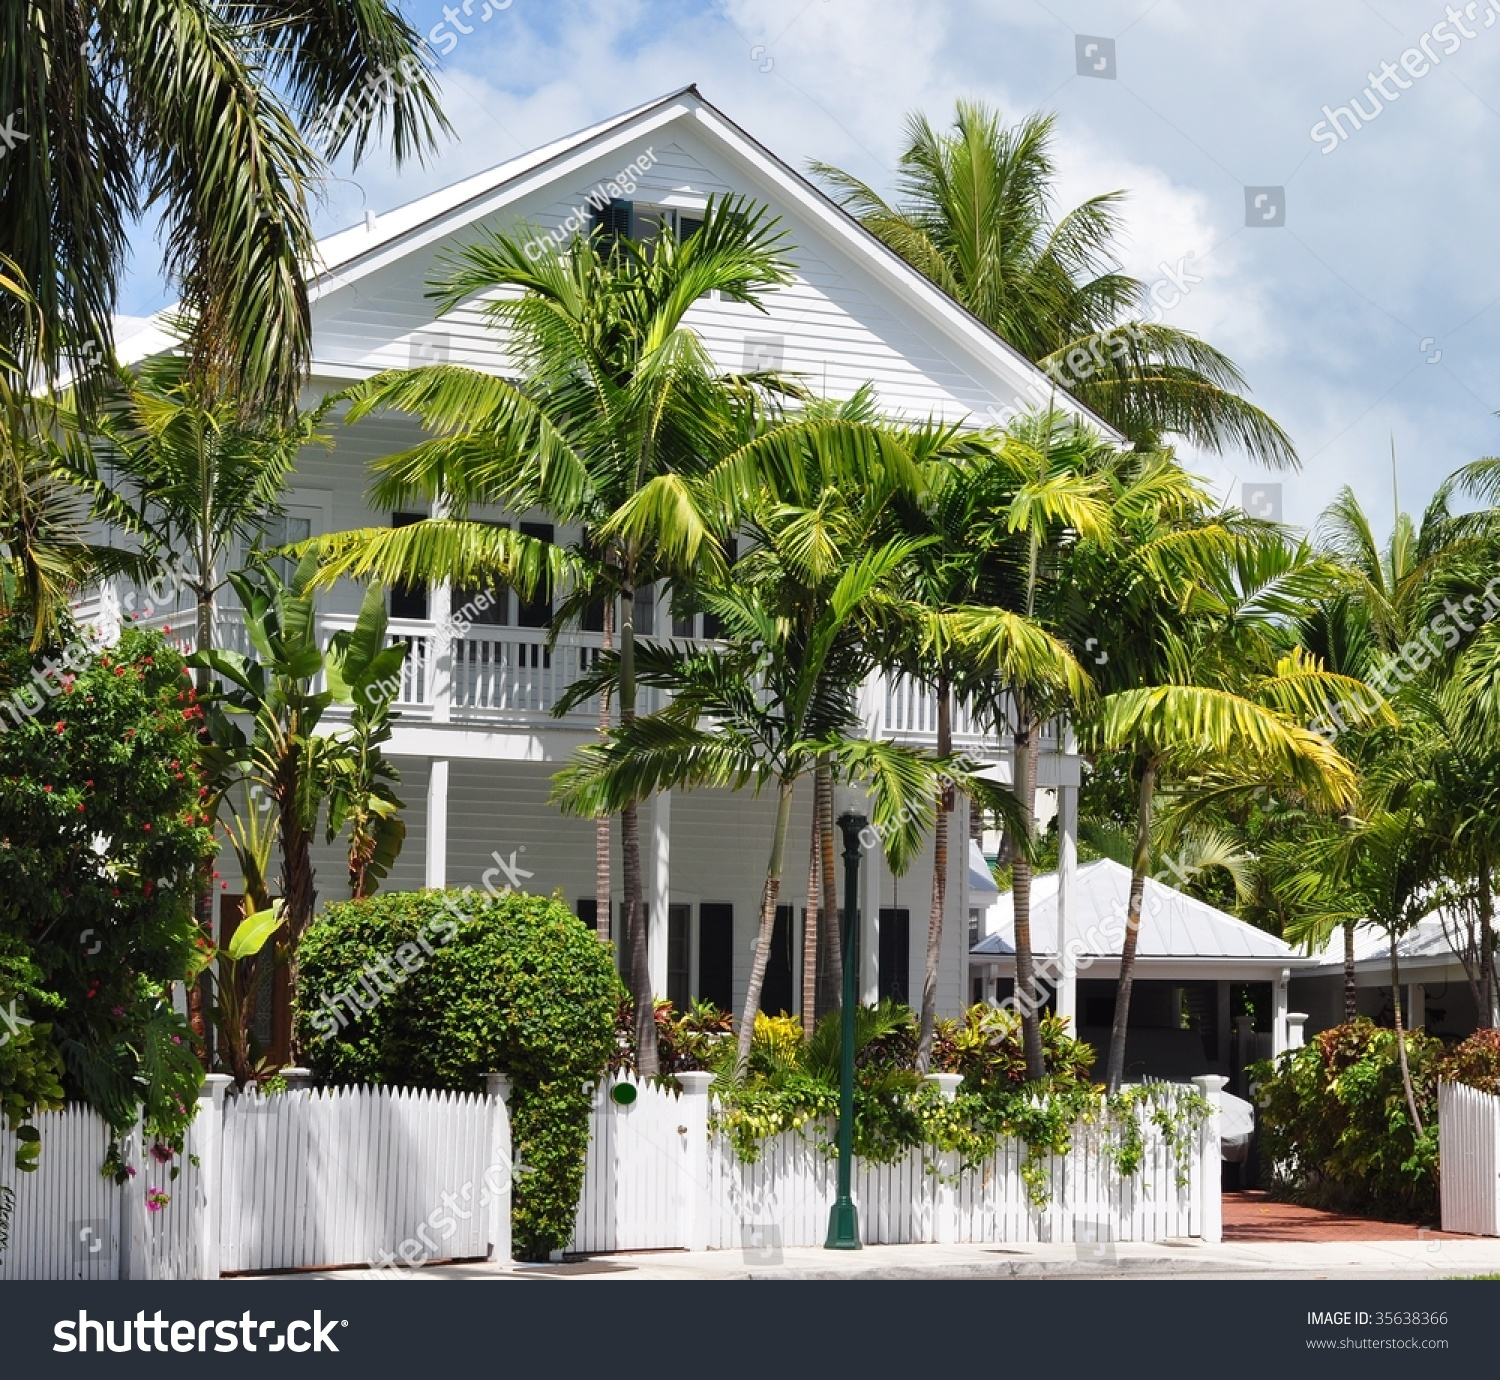 Key West Style Architecture Stock Photo 35638366